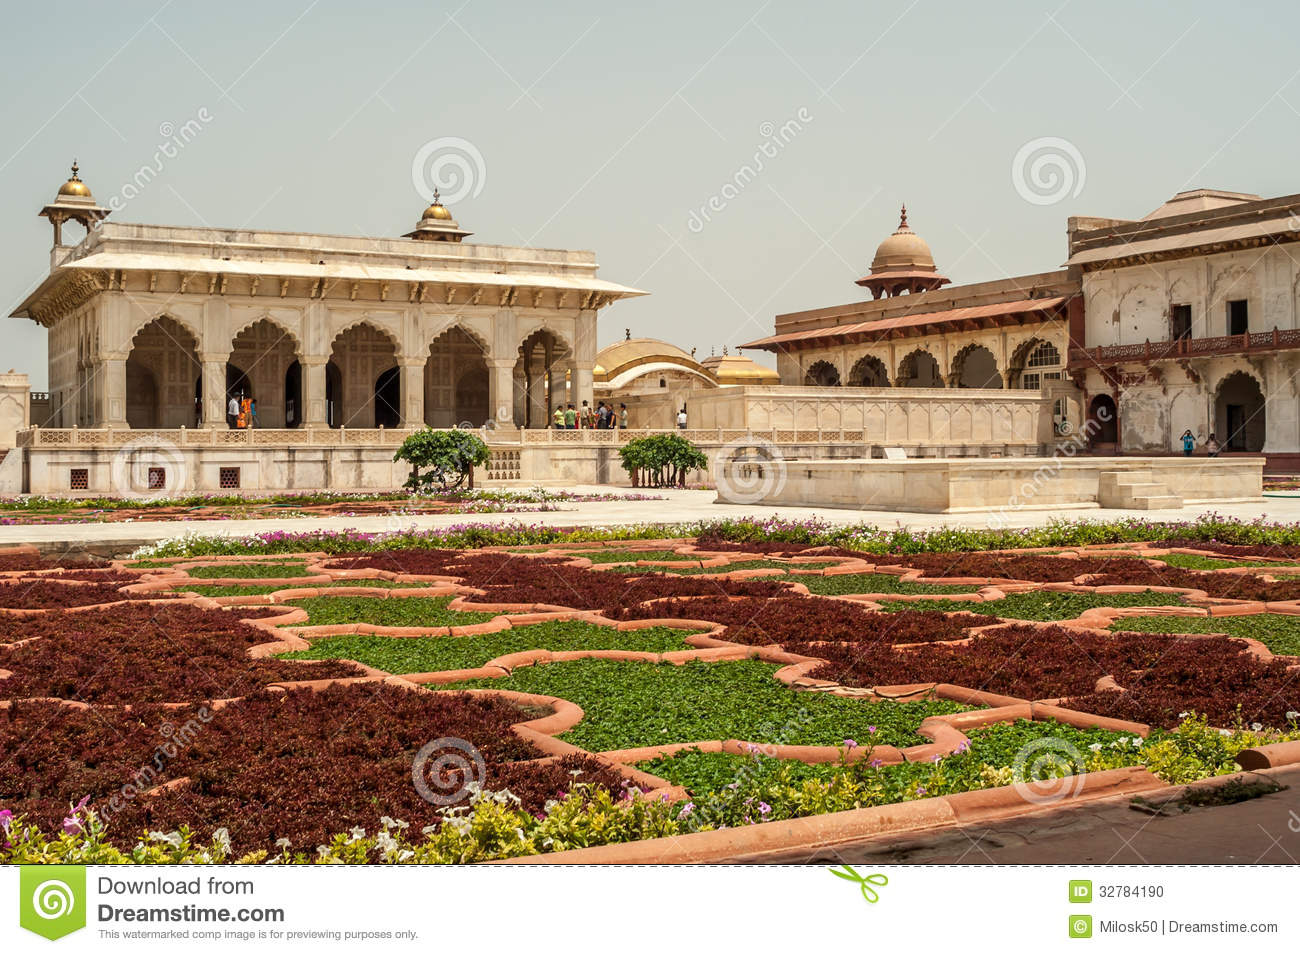 Garten in Agra-Fort